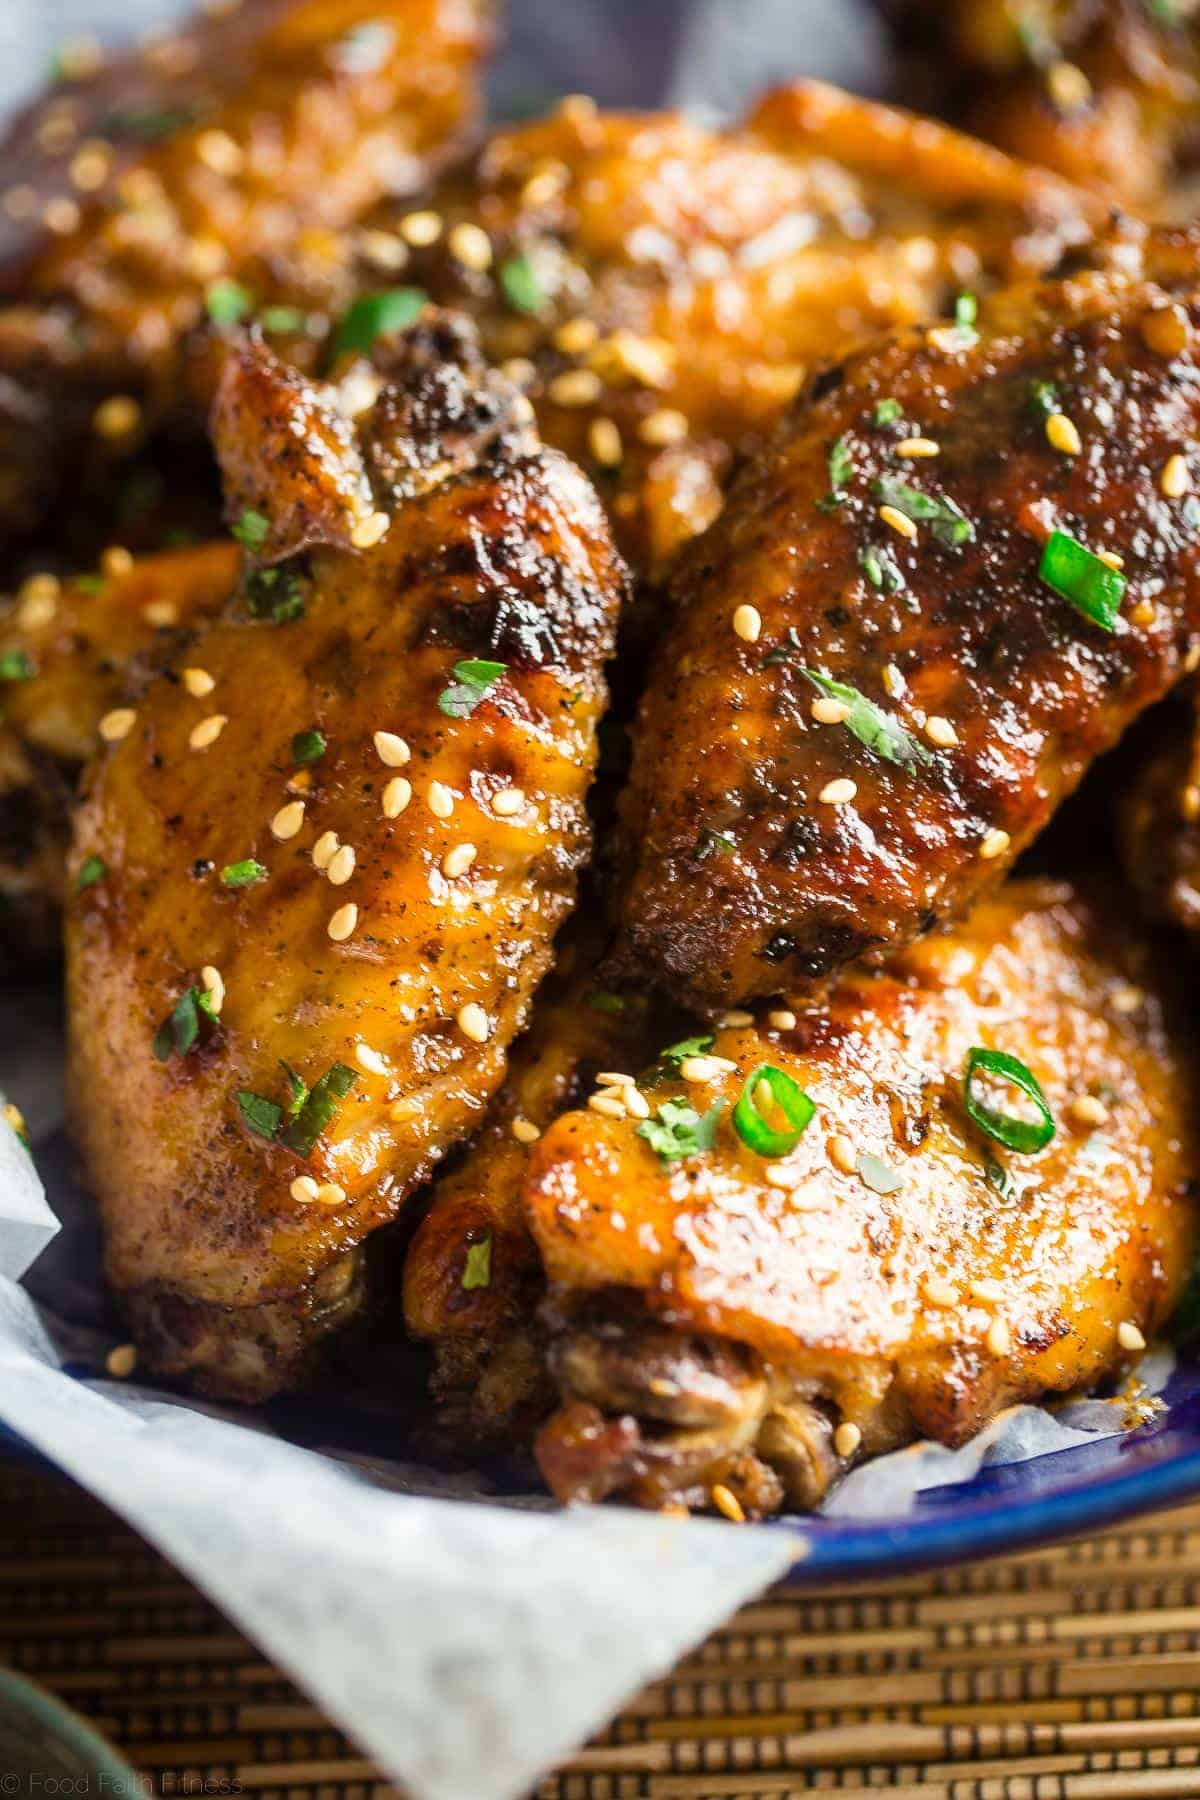 Whole30 Sticky Pineapple 5 Spice Slow Cooker Chicken Wings - Let the slow cooker do the work for you with these Asian-inspired chicken wings! You'll never know they're secretly whole30 and paleo compliant! Perfect for game day! | Foodfaithfitness.com | @FoodFaithFit